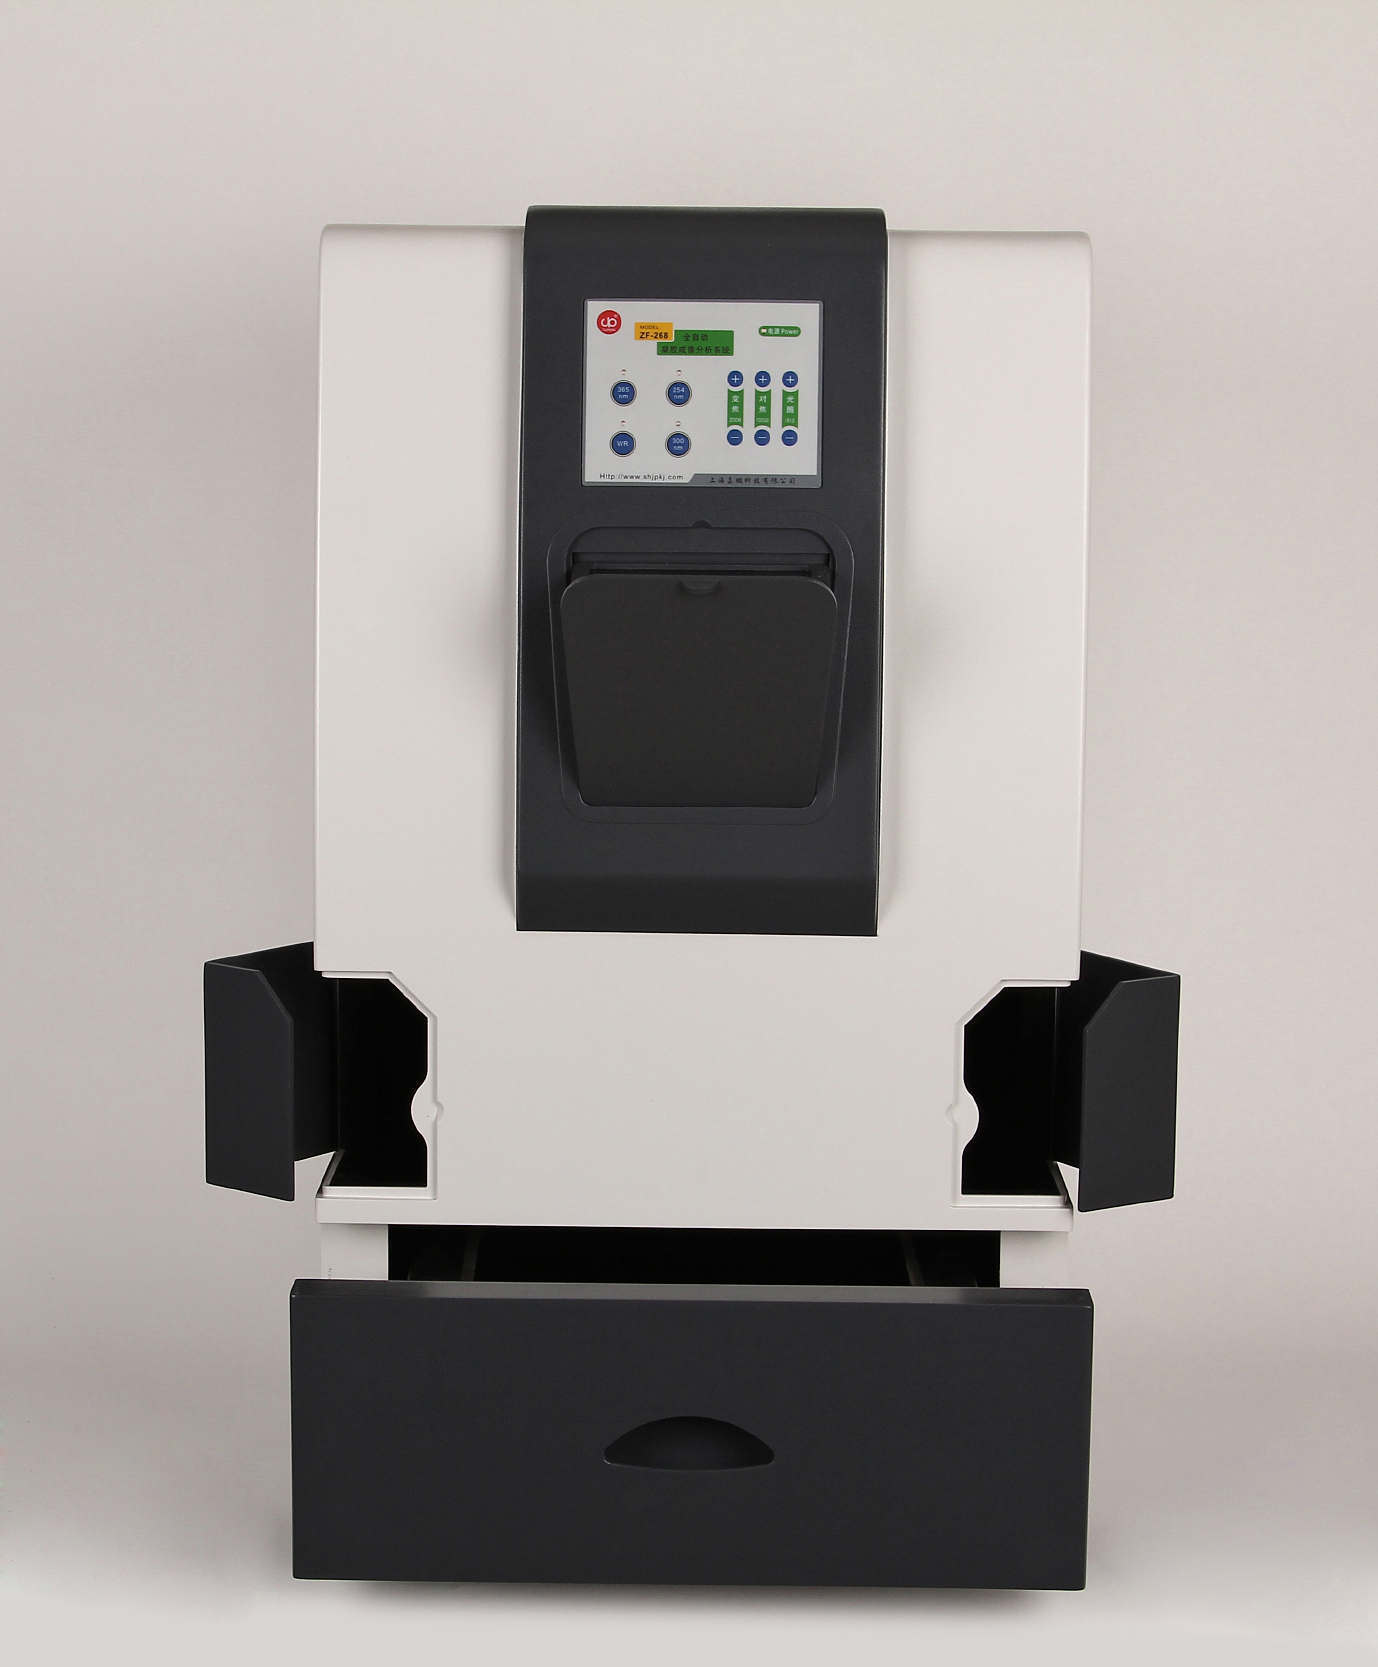 Laboratory High Quality Gel Imaging Analysis System